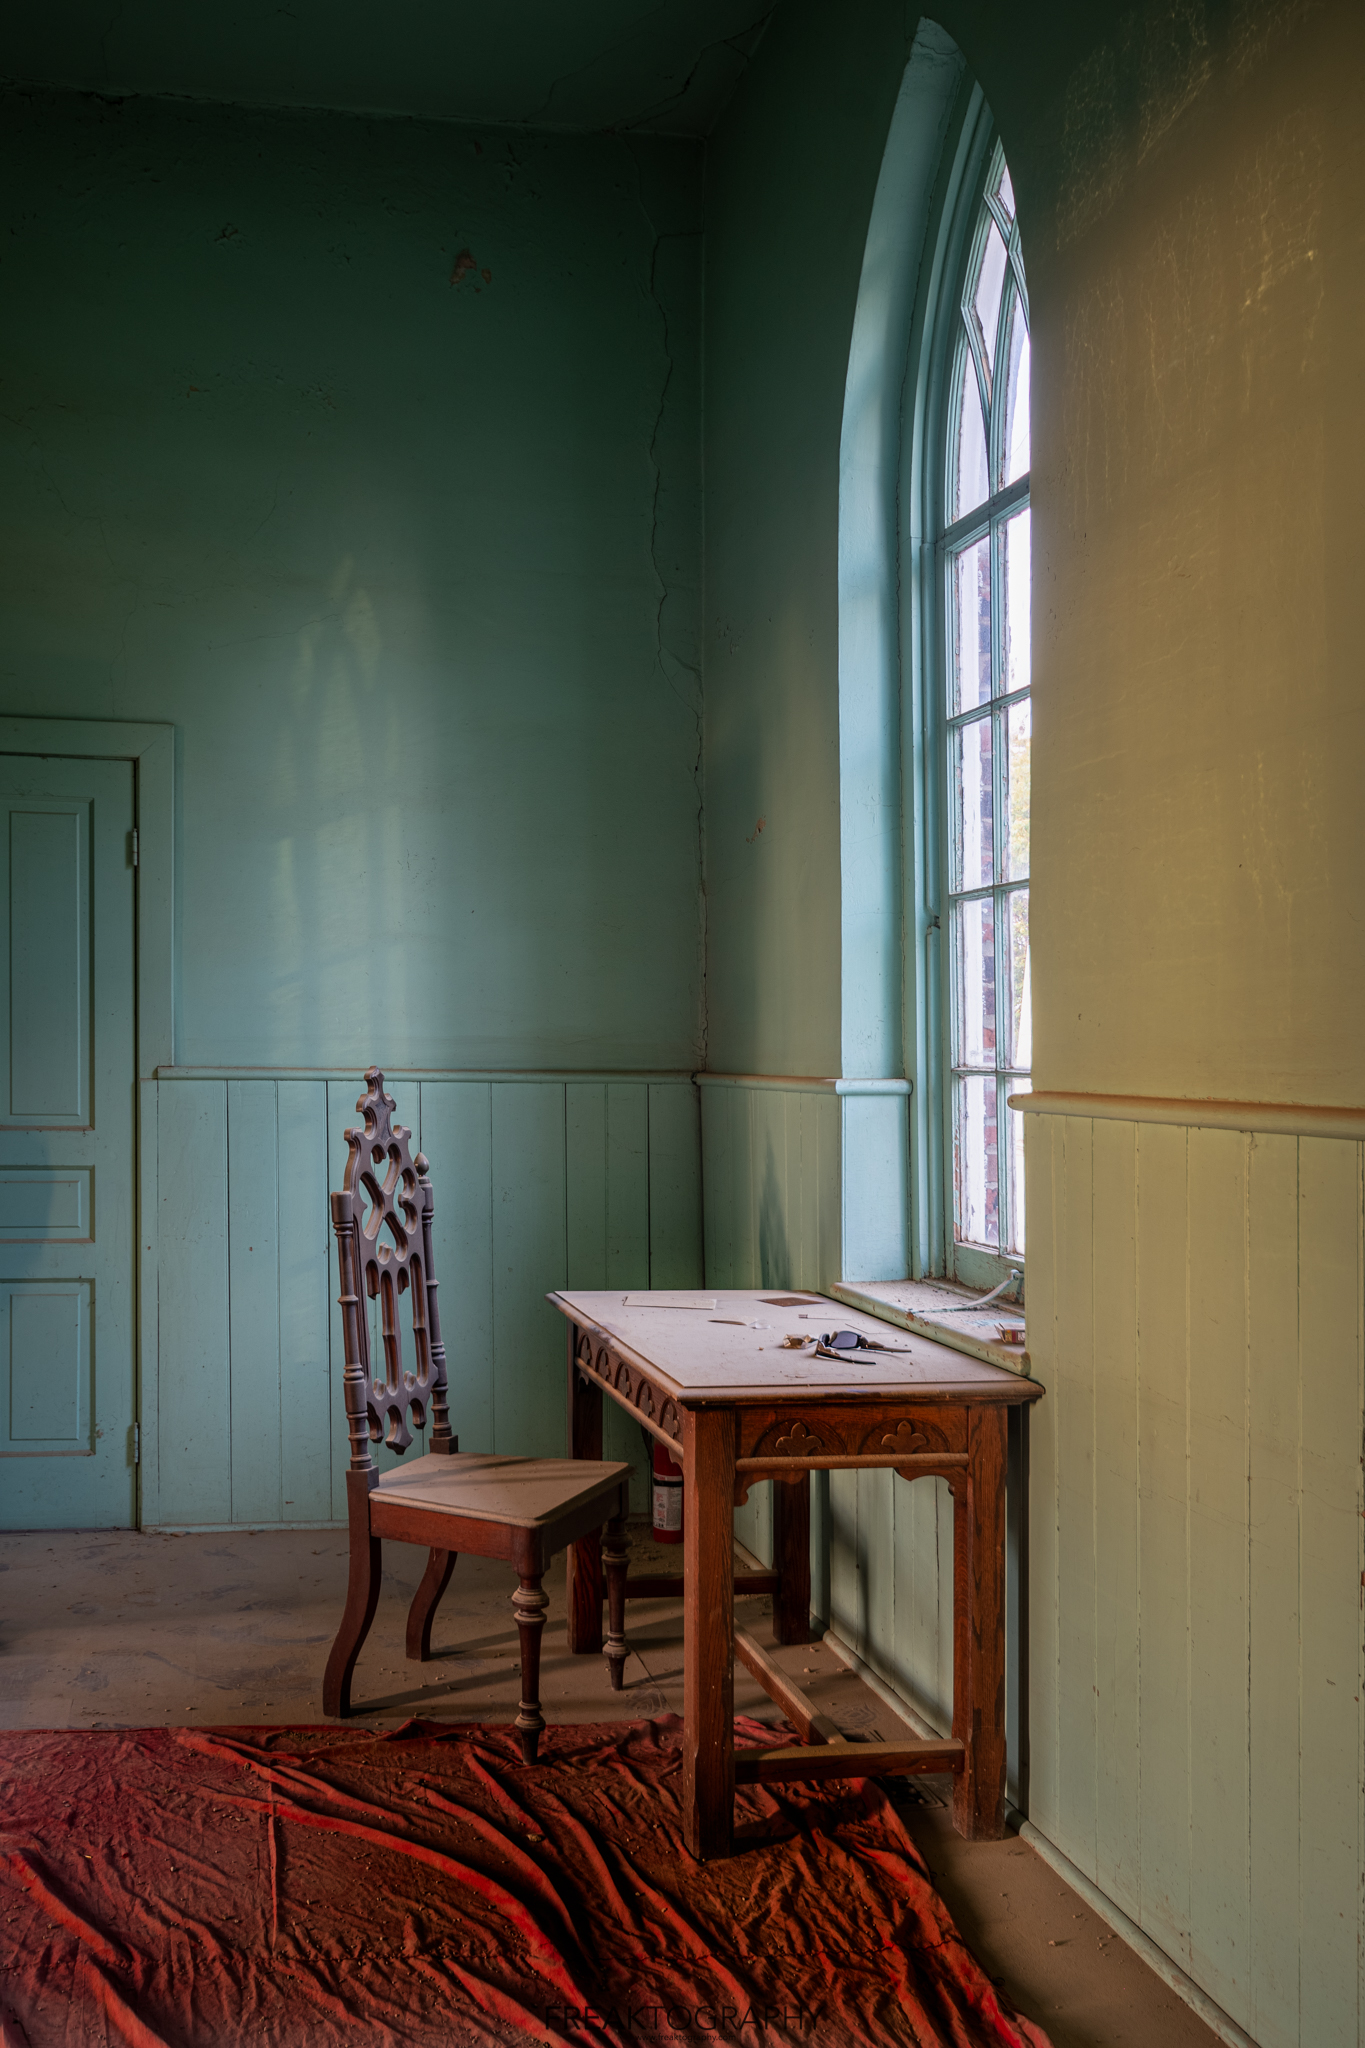 Abandoned Ontario Church Window and Desk